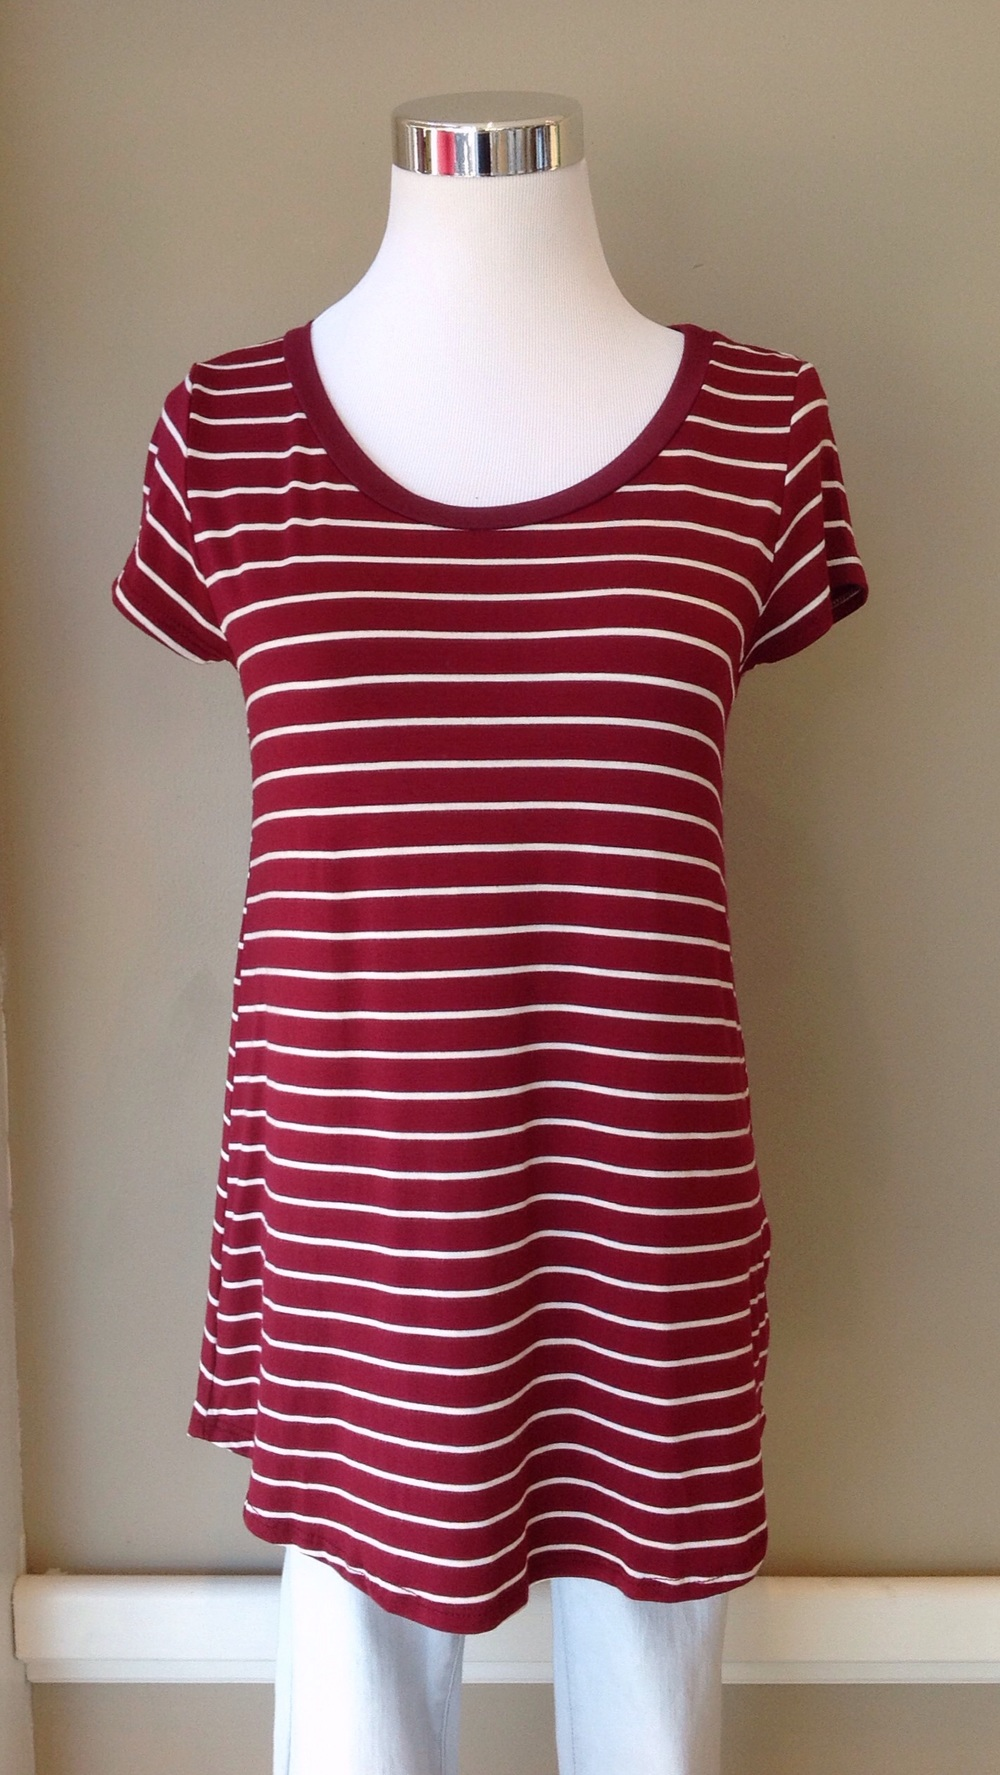 Soft knit tee in burgundy/white, $28